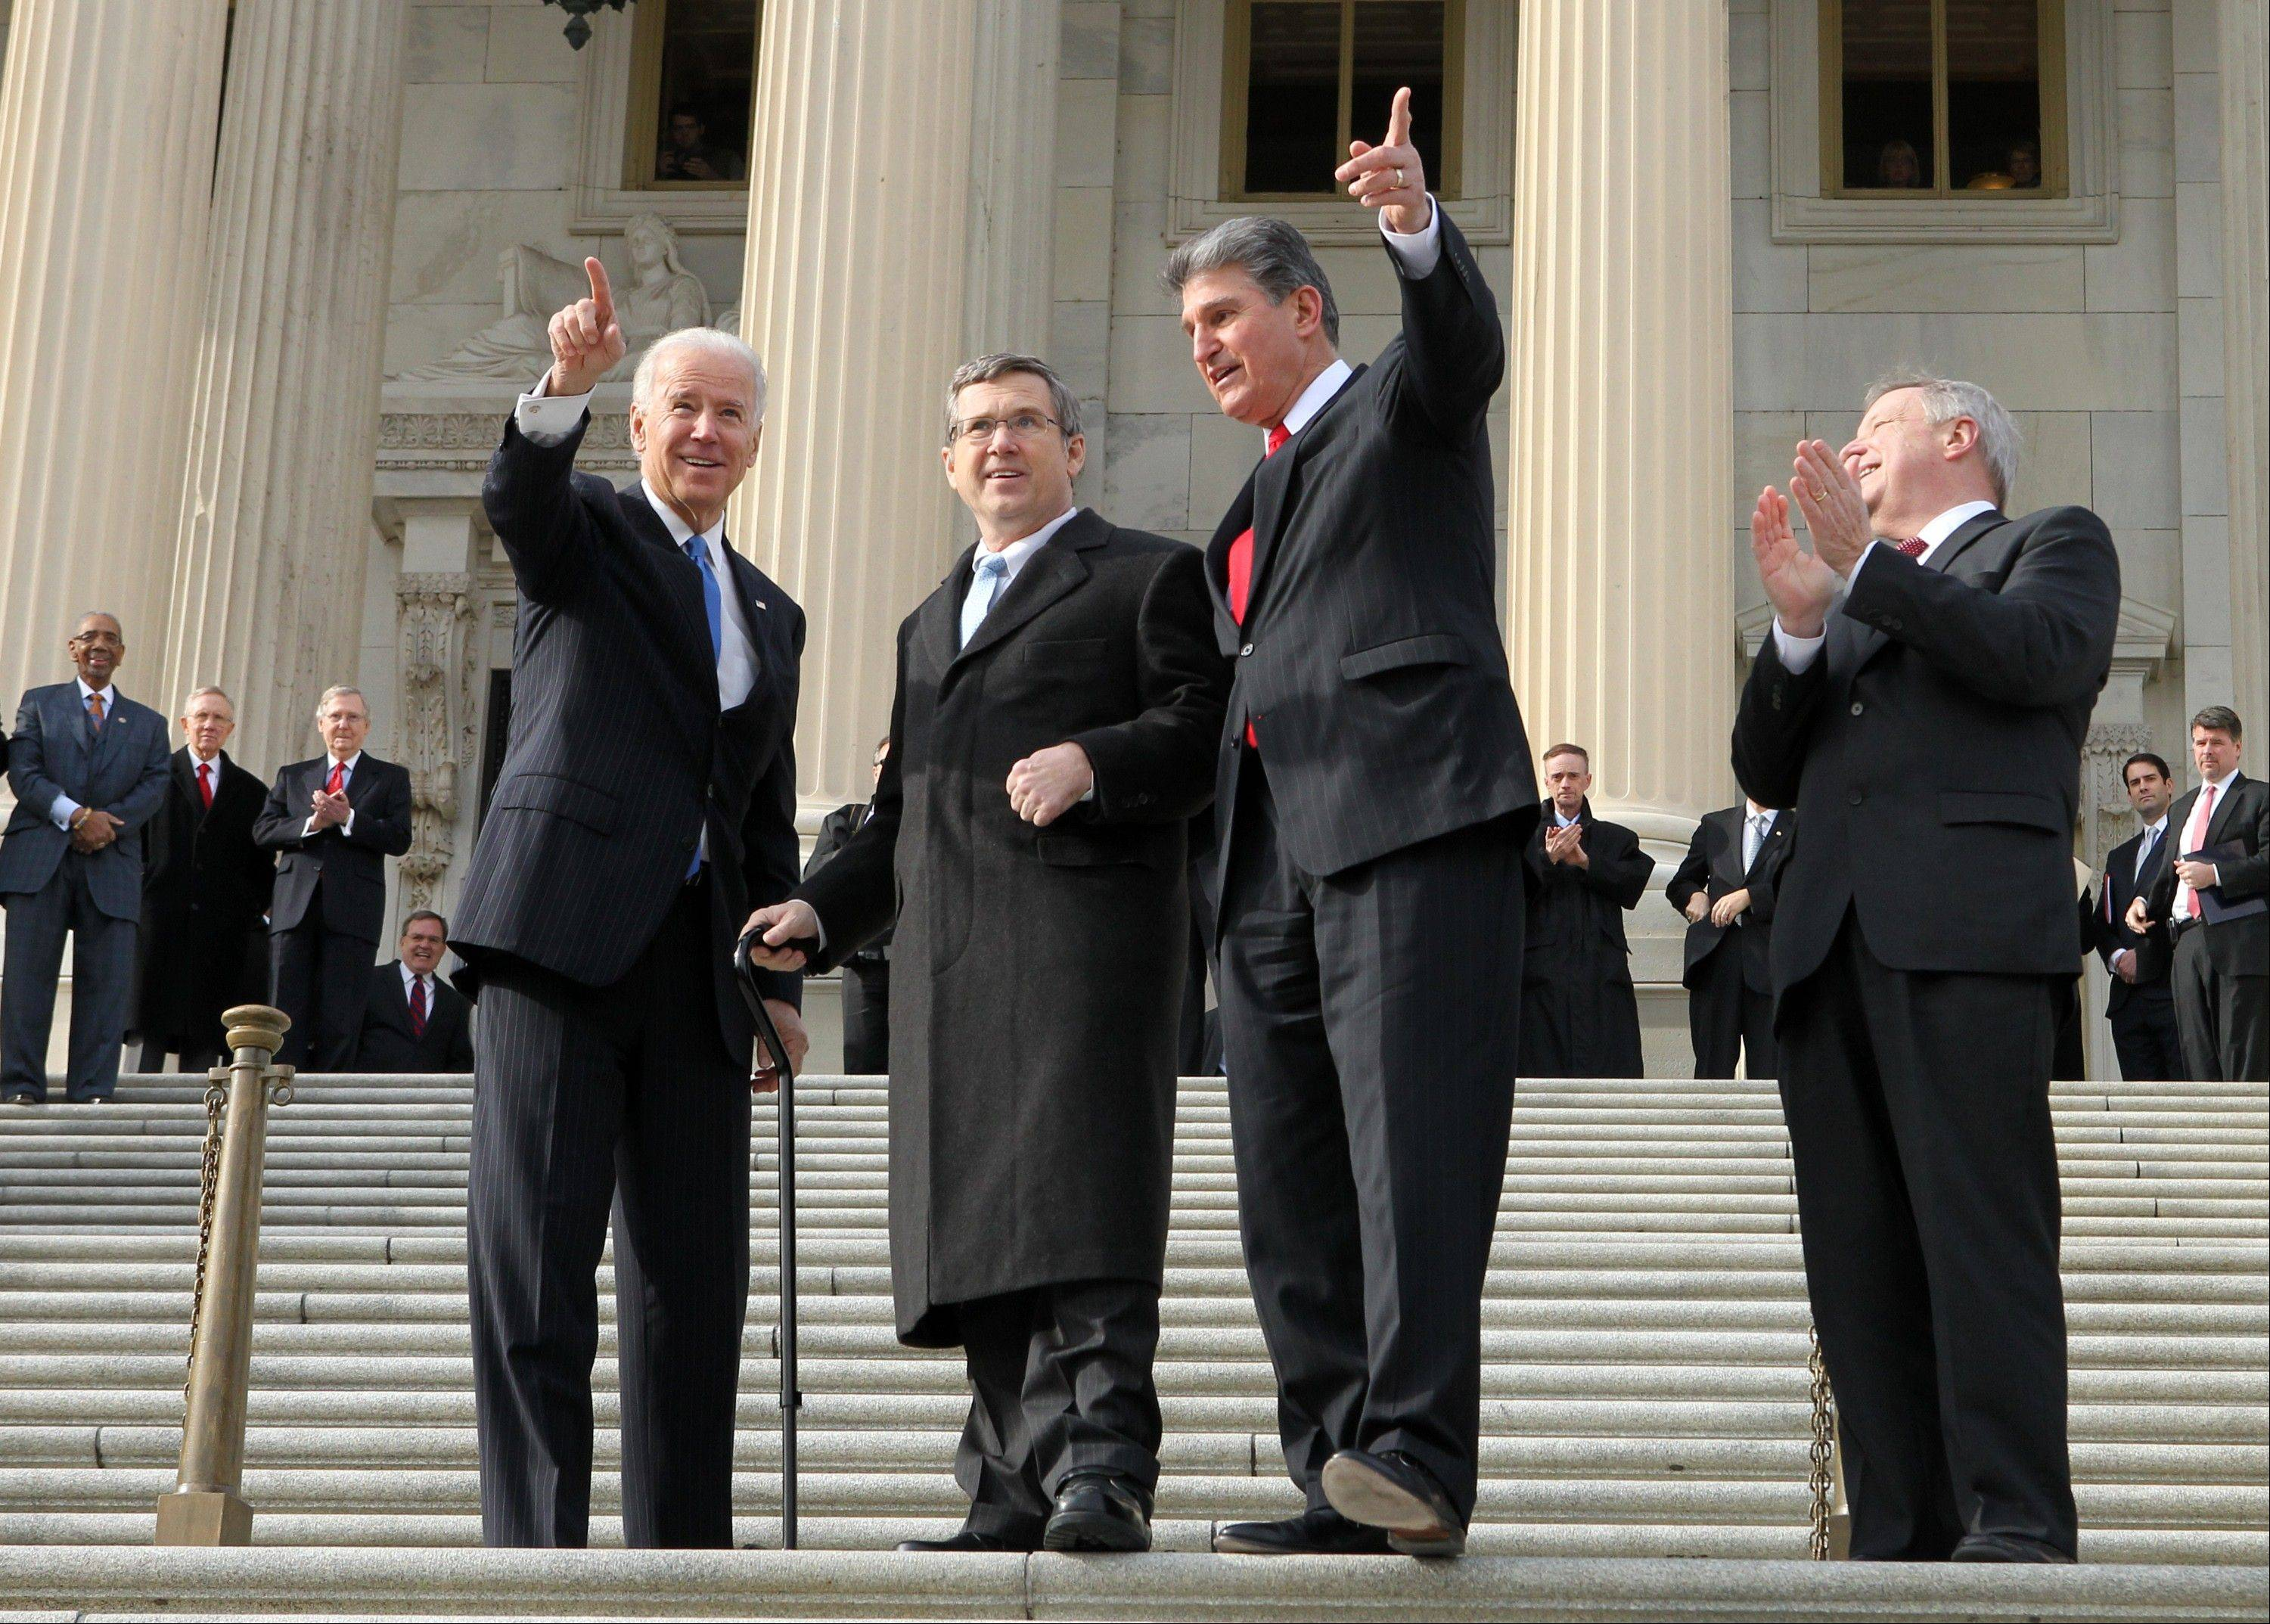 IMAGE DISTRIBUTED FOR REHABILITATION INSTITUTE OF CHICAGO - U.S. Senator Mark Kirk (R-IL), second from left, who participated in a clinical walking trial at the Rehabilitation Institute of Chicago following a massive stroke in January 2012, acknowledges the crowd of well-wishers as U.S. Vice President Joe Biden, left, Senators Joe Manchin (D-WV), center, and Dick Durbin (D-IL), right, walk with him up the Capitol building steps in Washington on Thursday, Jan. 3, 2013. Kirk hopes his recovery will serve as an inspiration to the millions of Americans recovering from stroke. (Paul Morigi / AP Images for Rehabilitation Institute of Chicago)